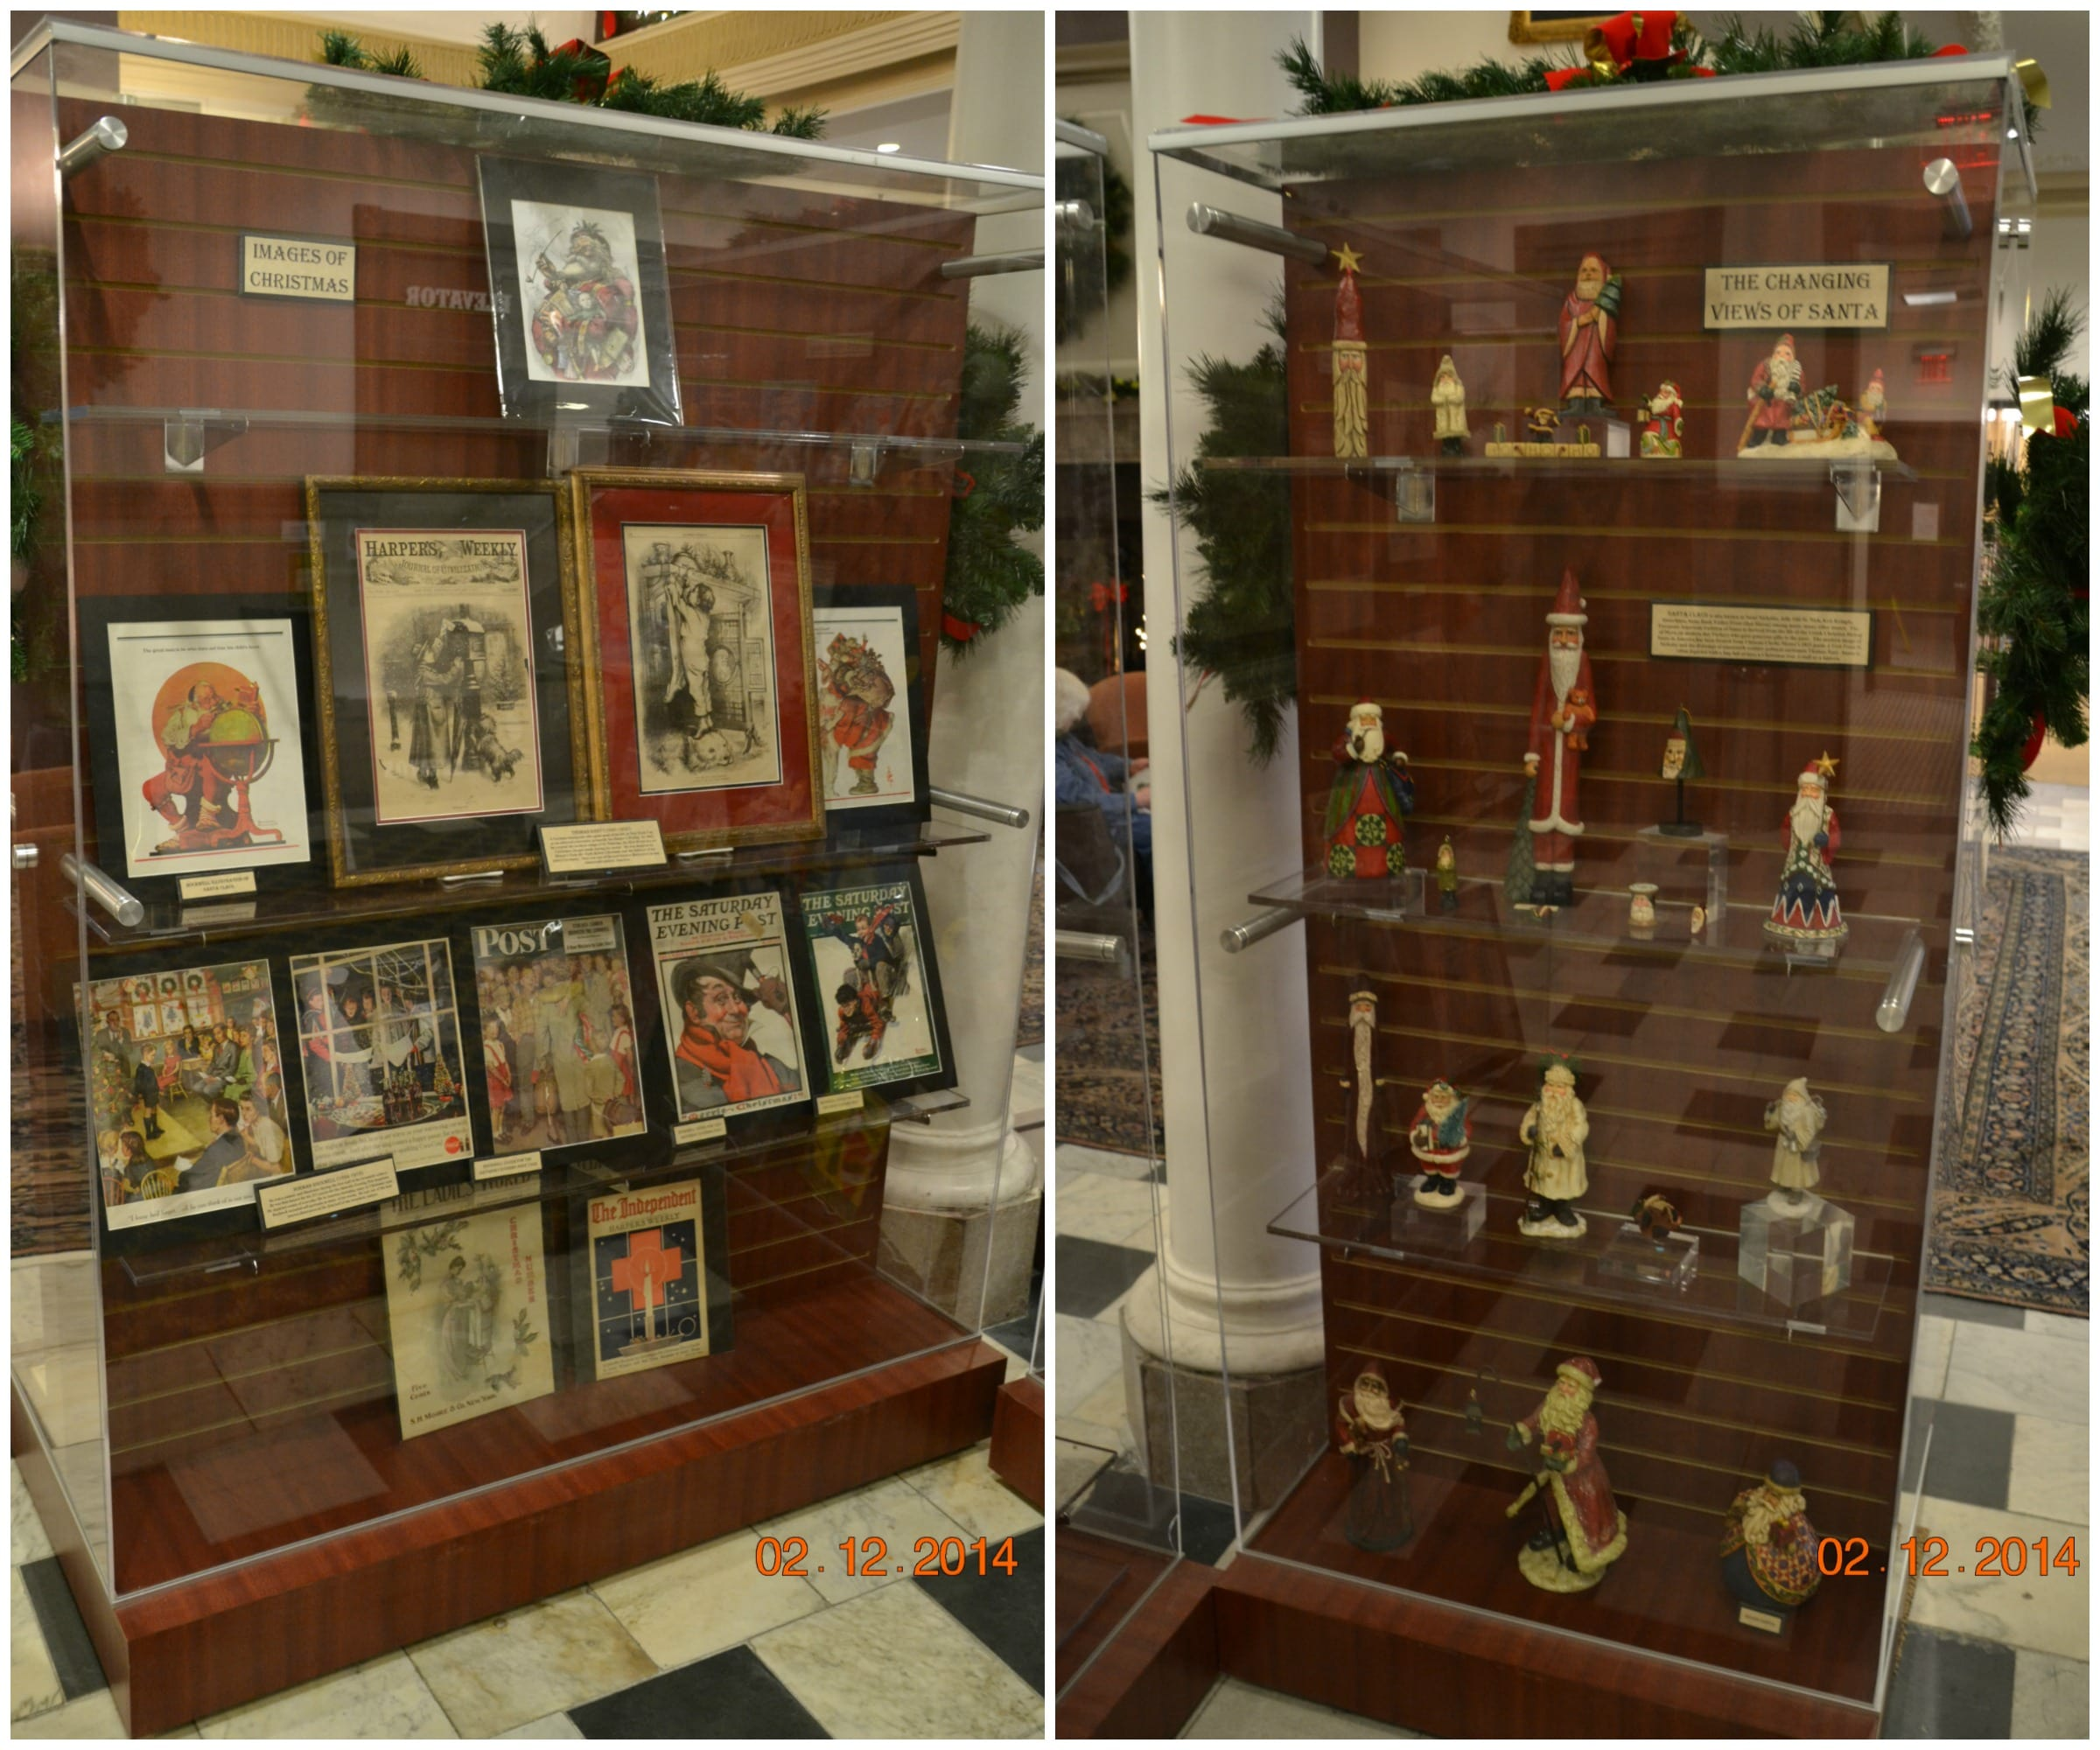 Images of Christmas and Changing Views of Santa Displays